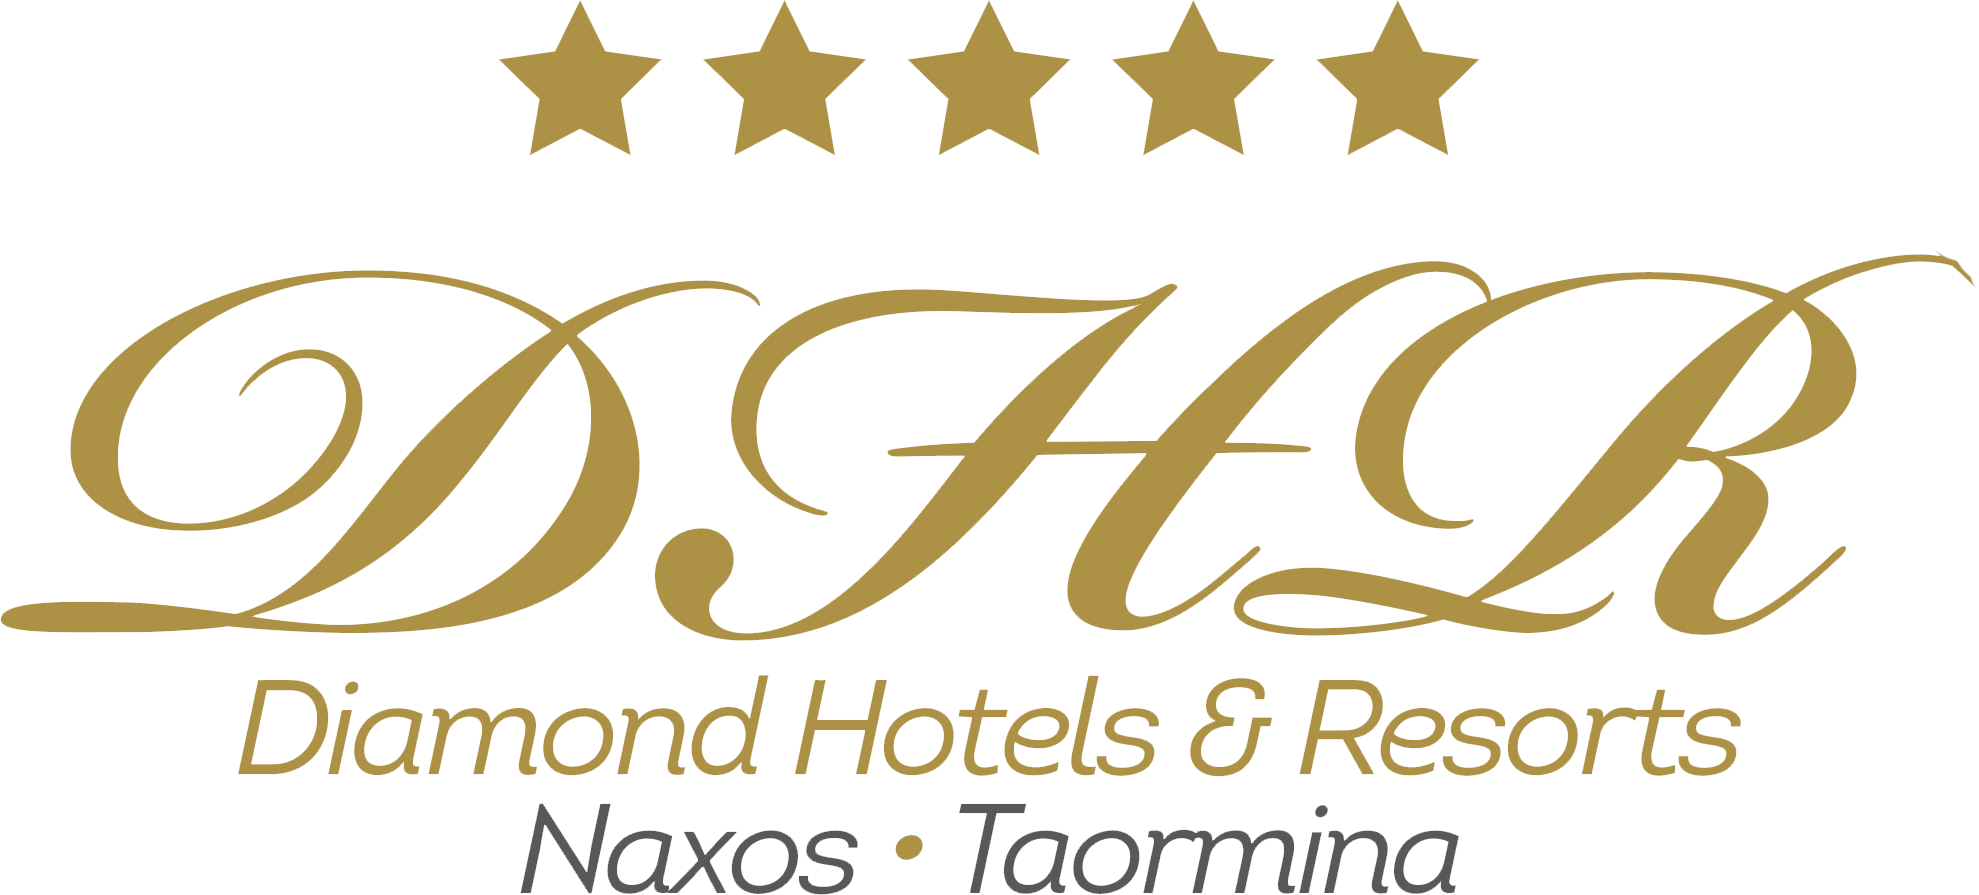 ART HOTEL DIAMOND NAXOS TAORMINA